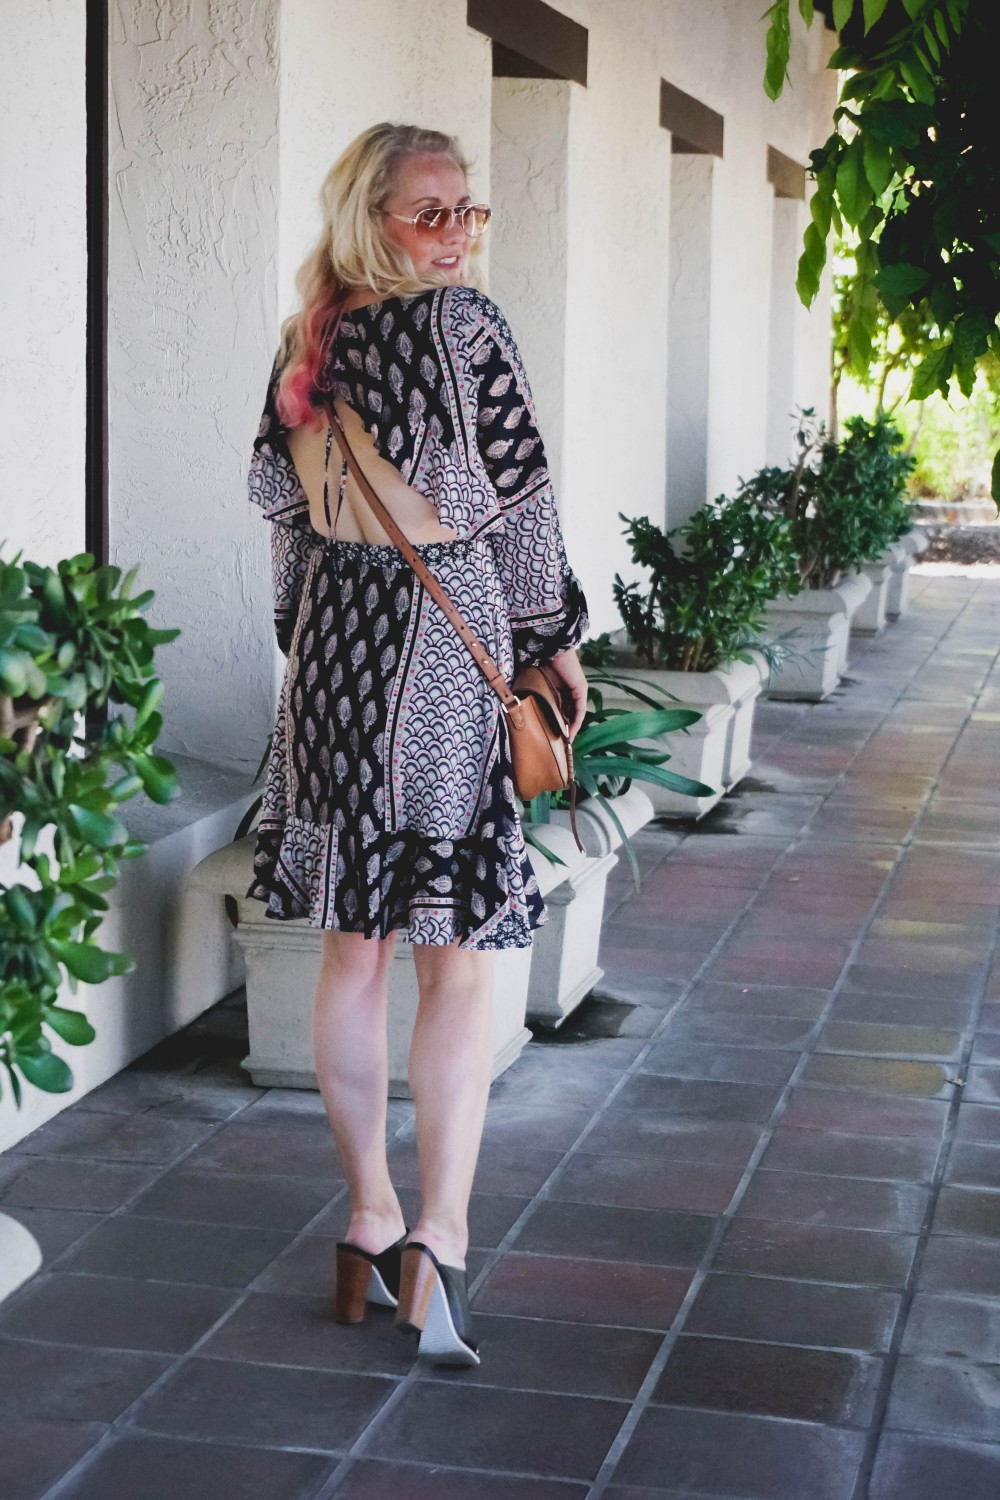 Open Back Ruffle Dress-Nordstrom Anniversary Sale-NSale-Fall Fashion-Fall Dresses-Outfit Inspiration-Buy Now Wear Now-Have Need Want 11